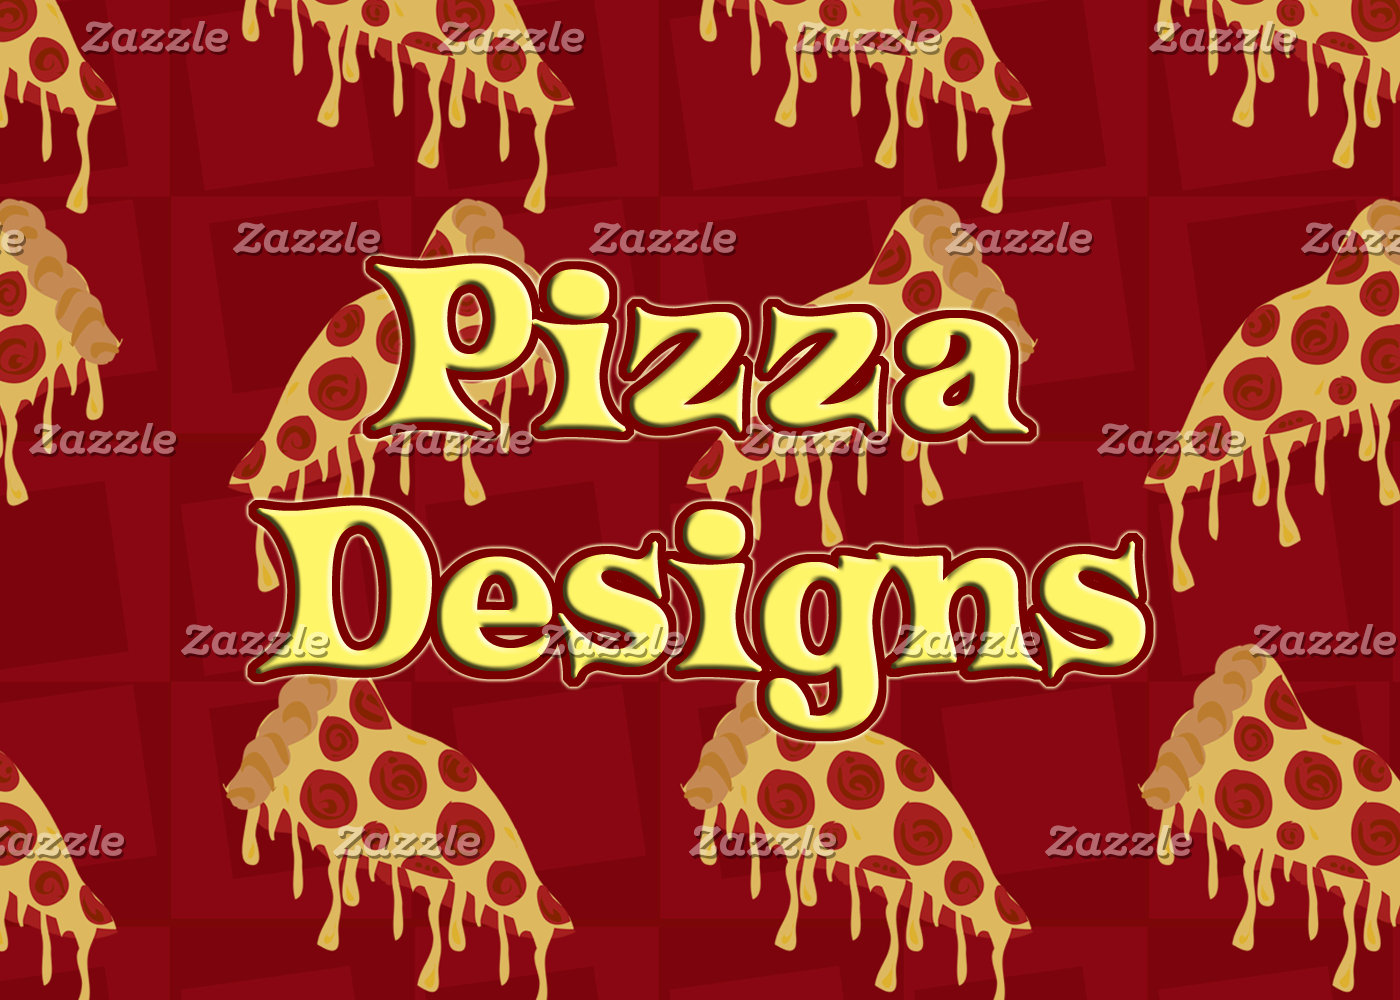 The Pizza Lovers Section